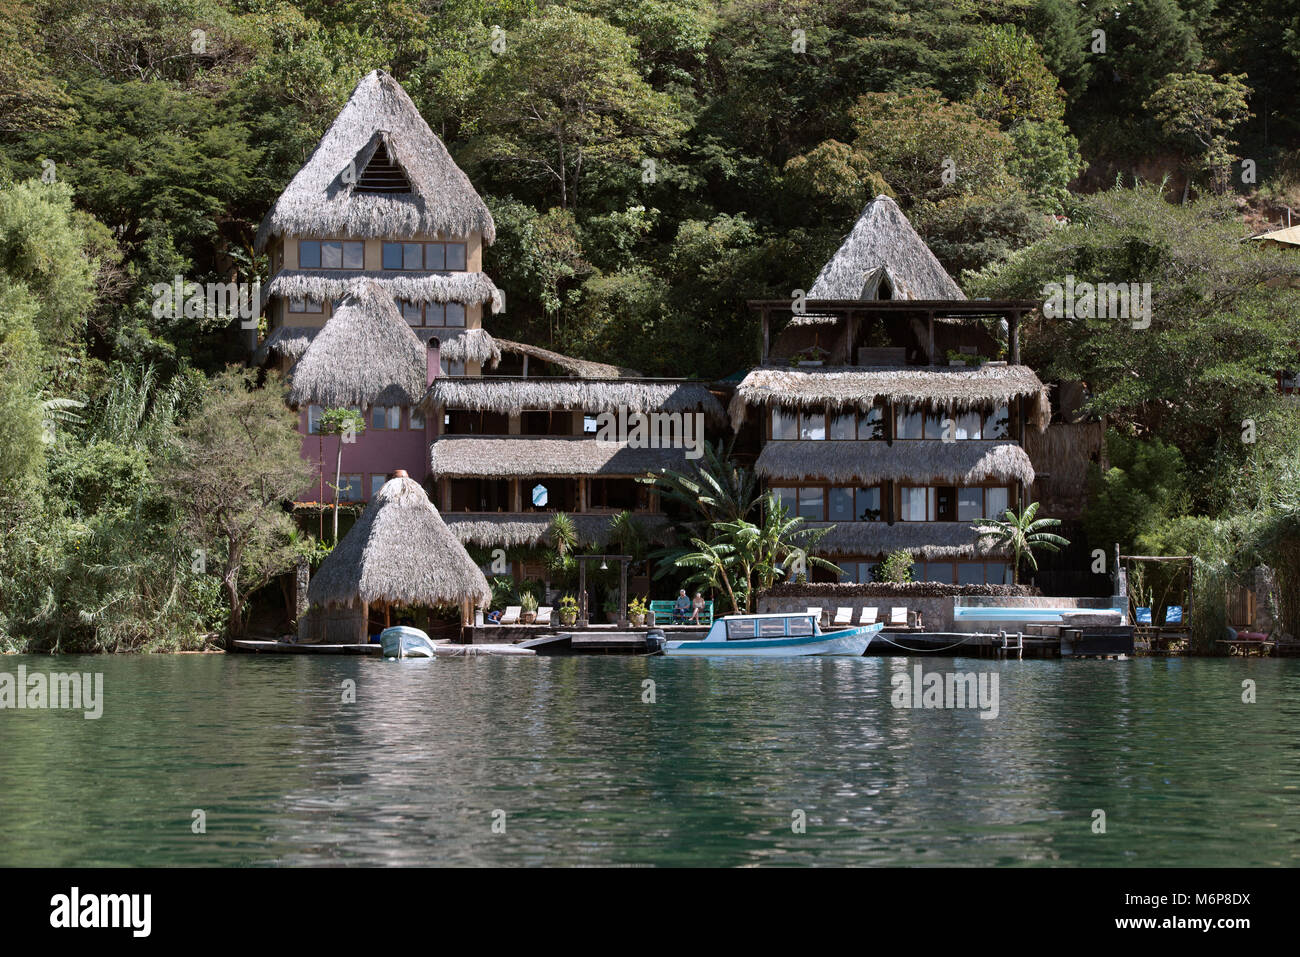 A modern hotel built in traditional Mayan style with thatched roof. Lake Atitlán, Sololá Department, Guatemala. - Stock Image